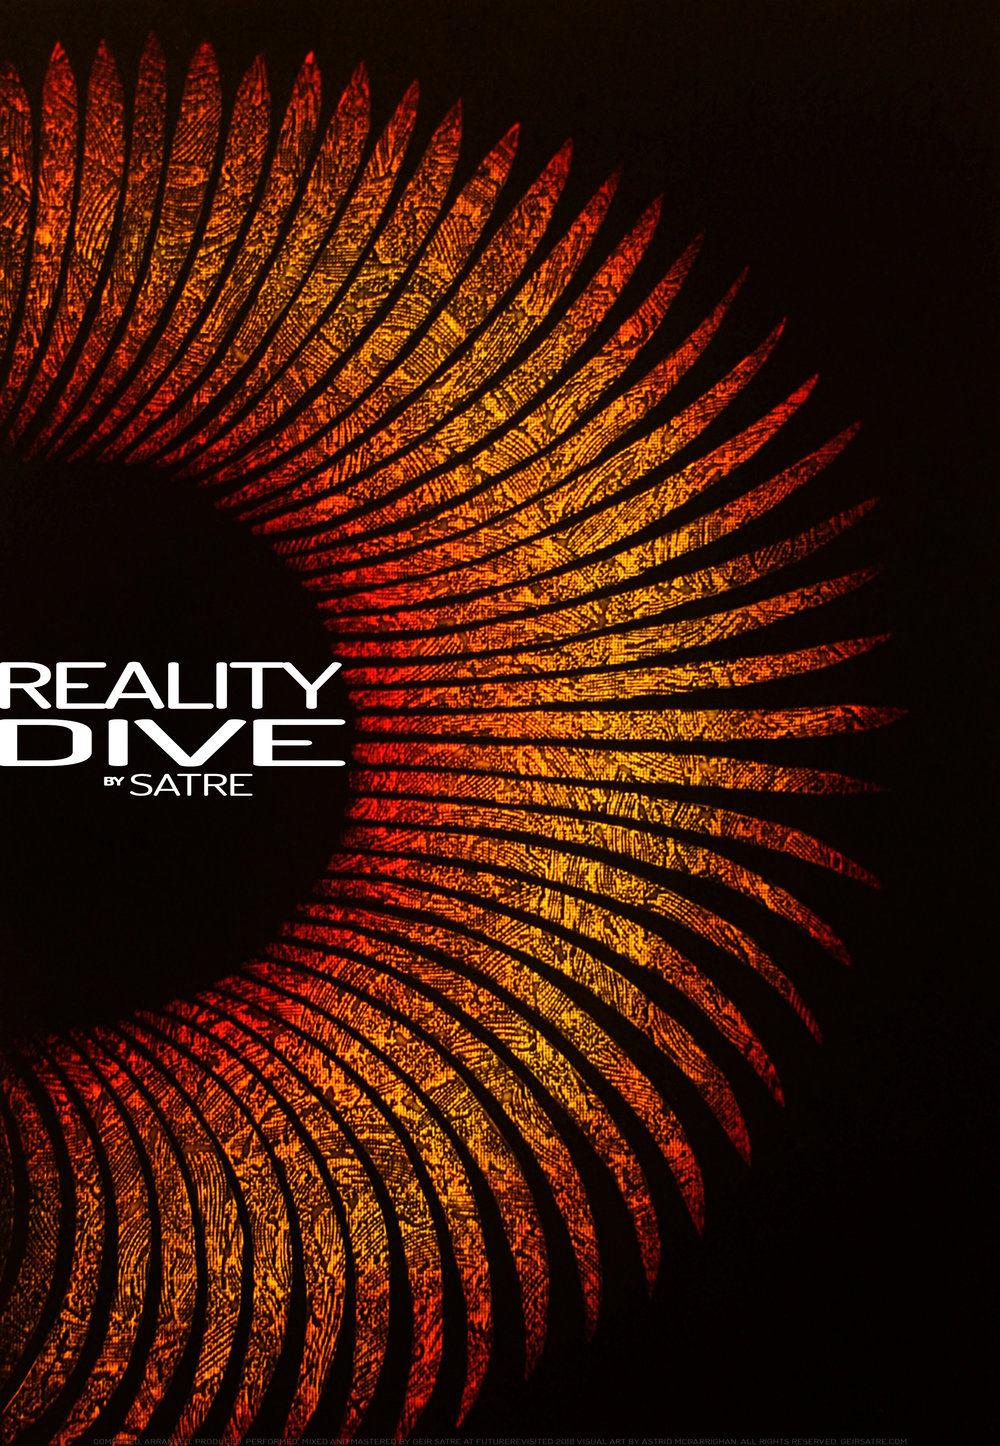 Reality-Dive-Artwork.jpg